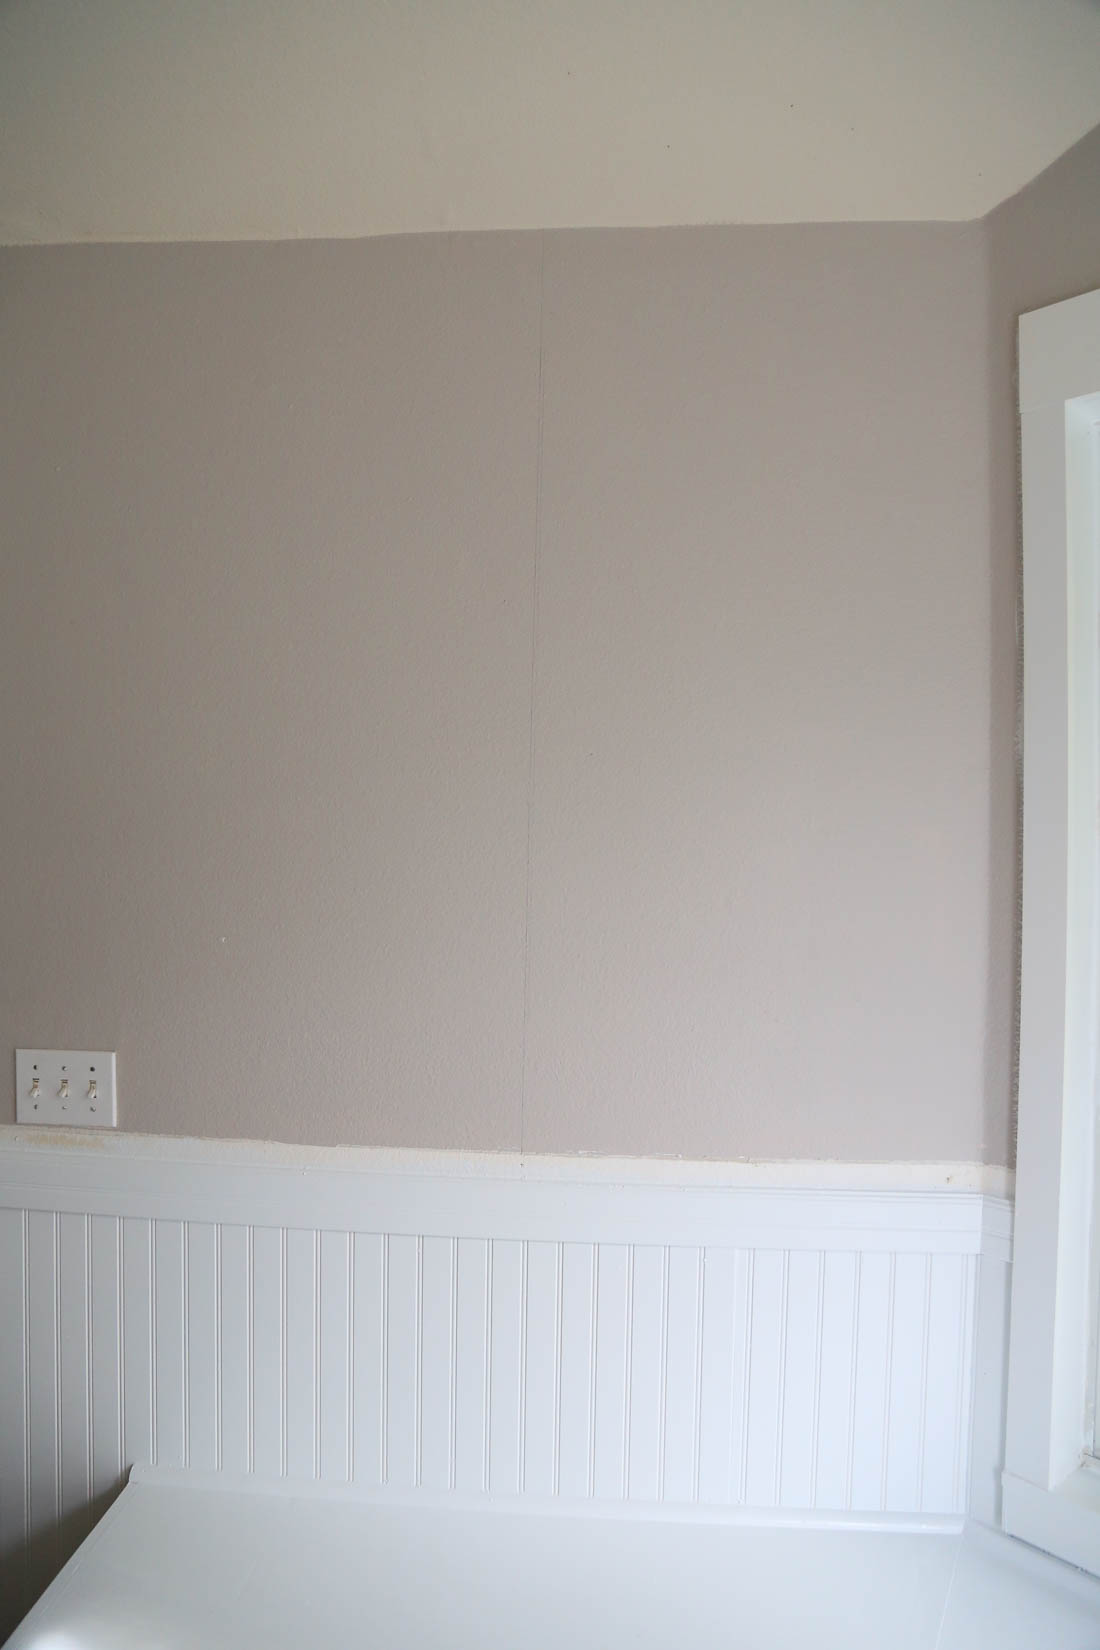 Installing wallpaper in a bay window